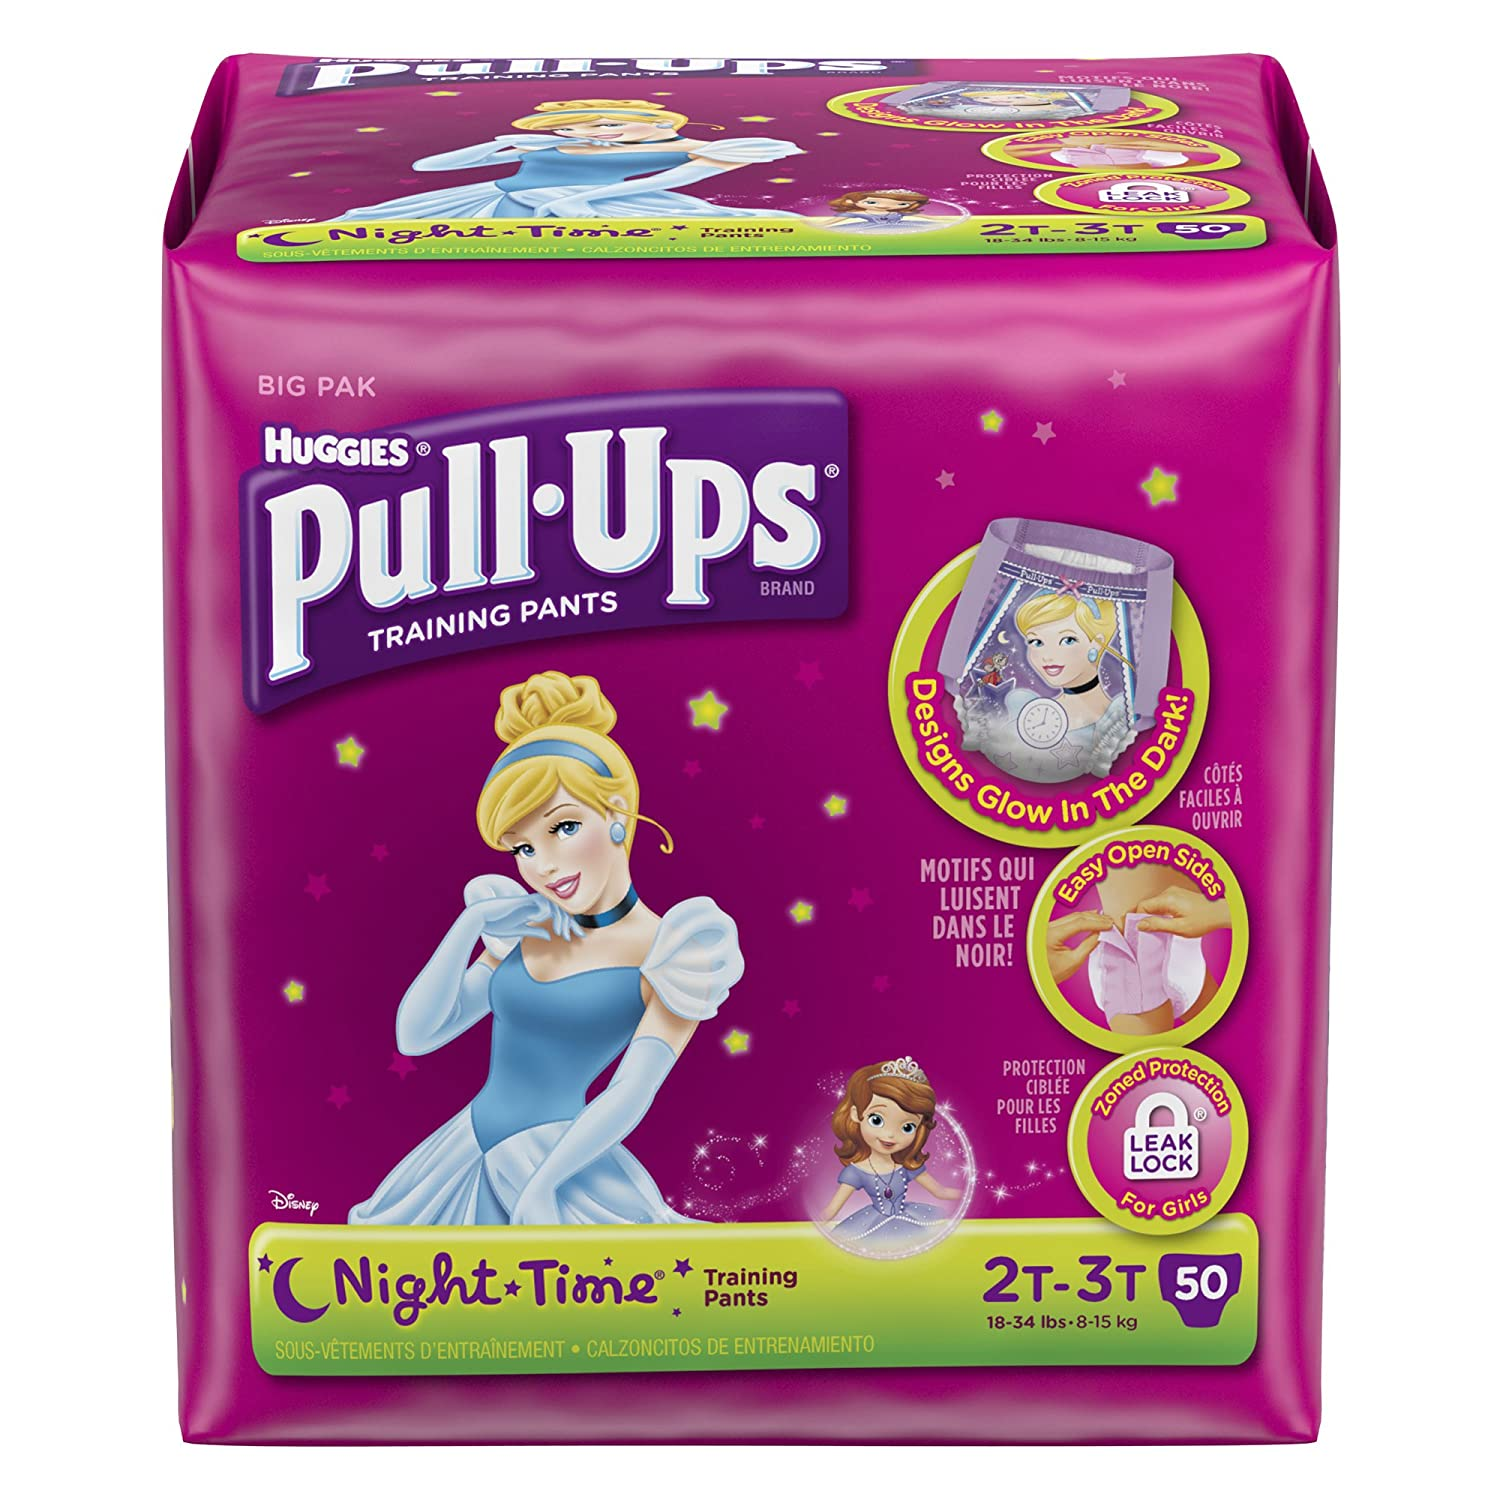 Amazon.com: Pull-Ups Night Time Training Pants for Girls, 2T-3T, 48 Count  (Pack of 2): Health & Personal Care